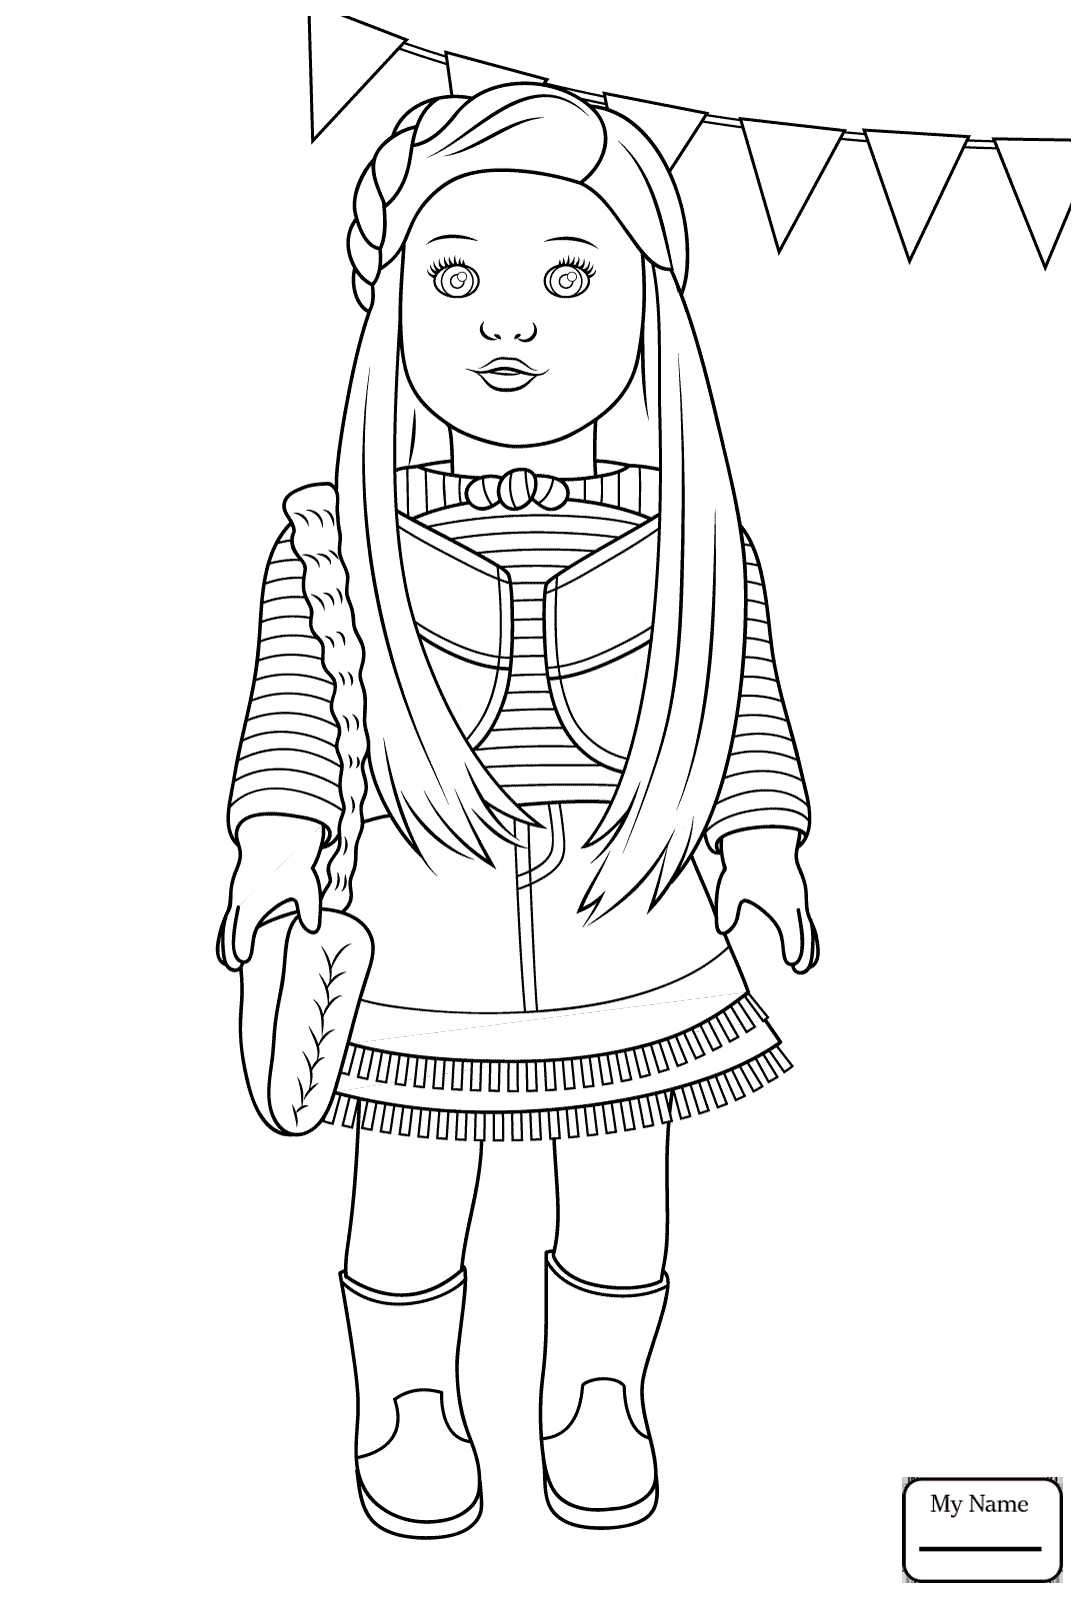 American Girl Doll Coloring Pages – coloring.rocks!